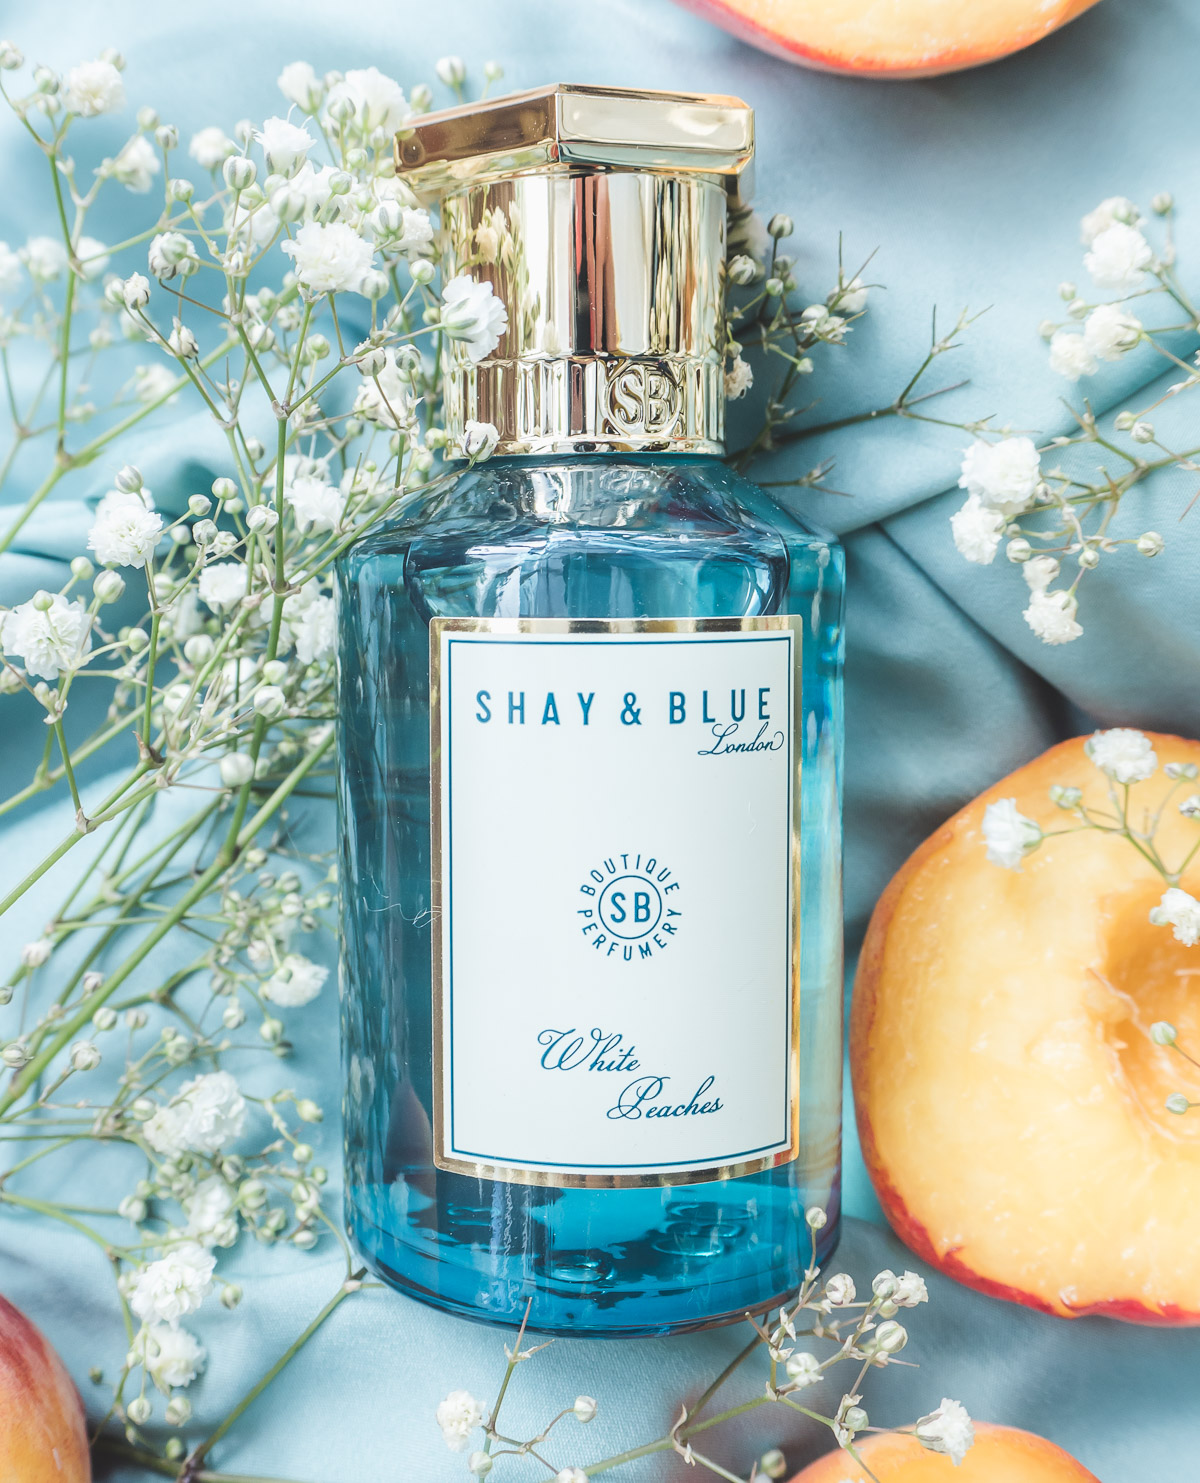 Shay & Blue Fragrance, Shay & Blue White Peaches, Fragrance Review, Fragrance, Perfume, Beauty, Fruit Fragrance